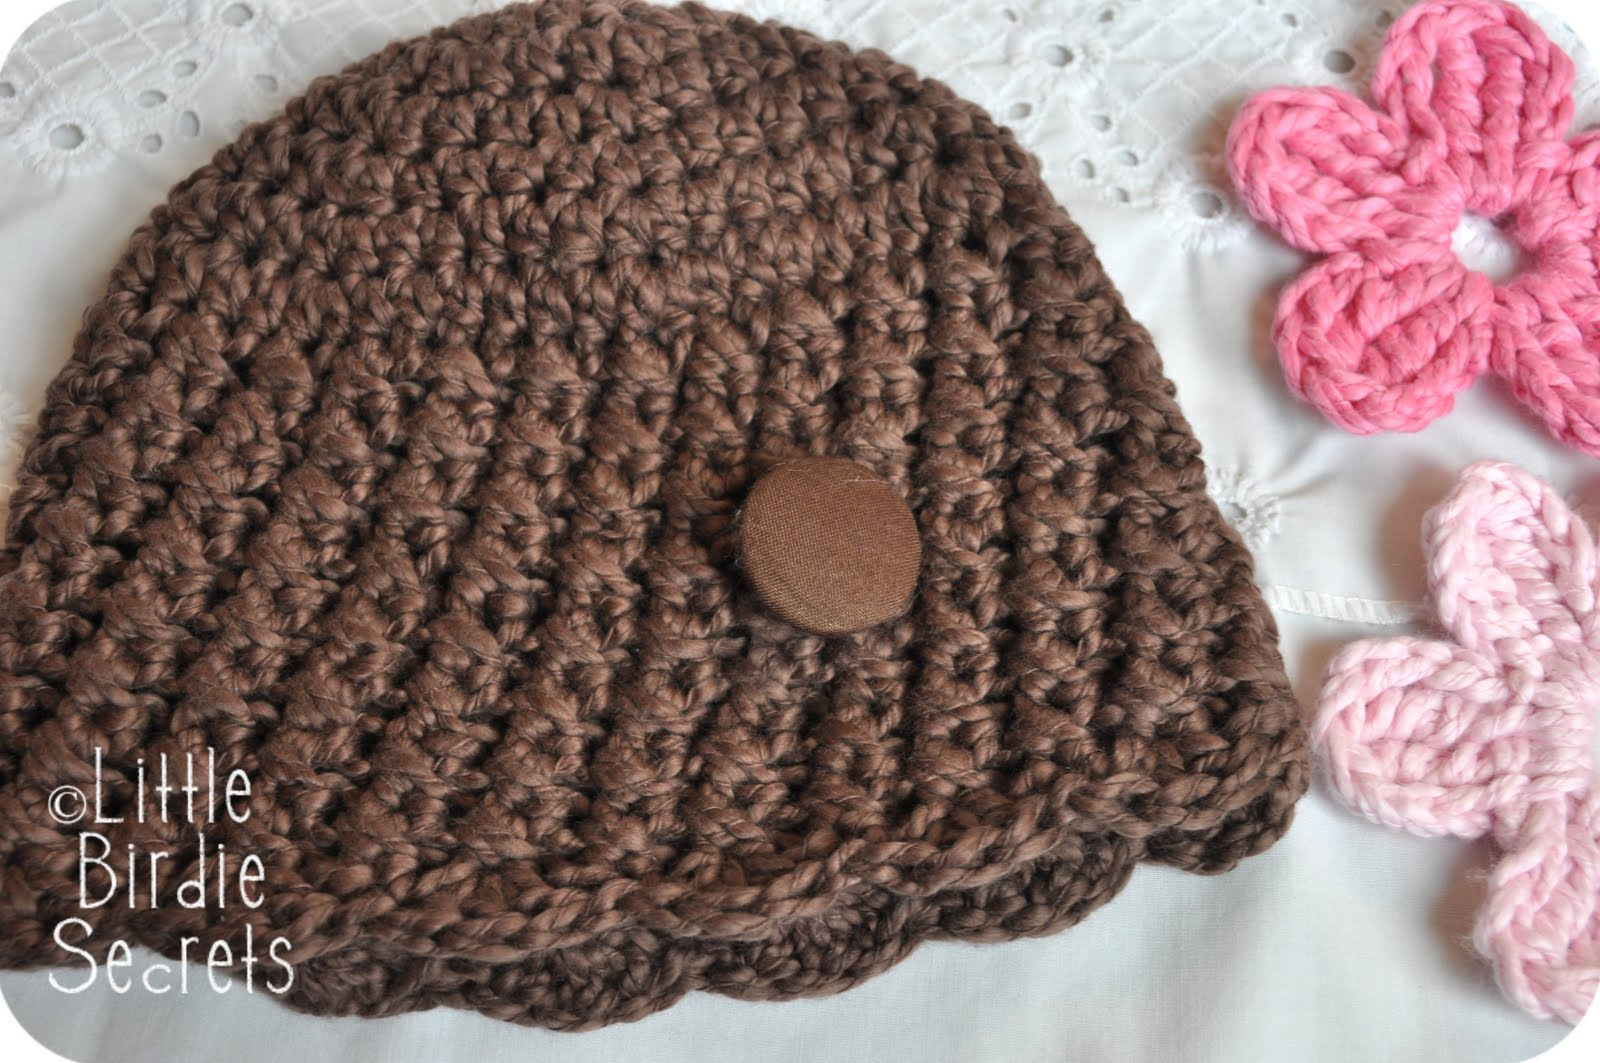 Crochet : Free Crochet Hat Patterns - Free Adult, Child & Baby Hat Crochet